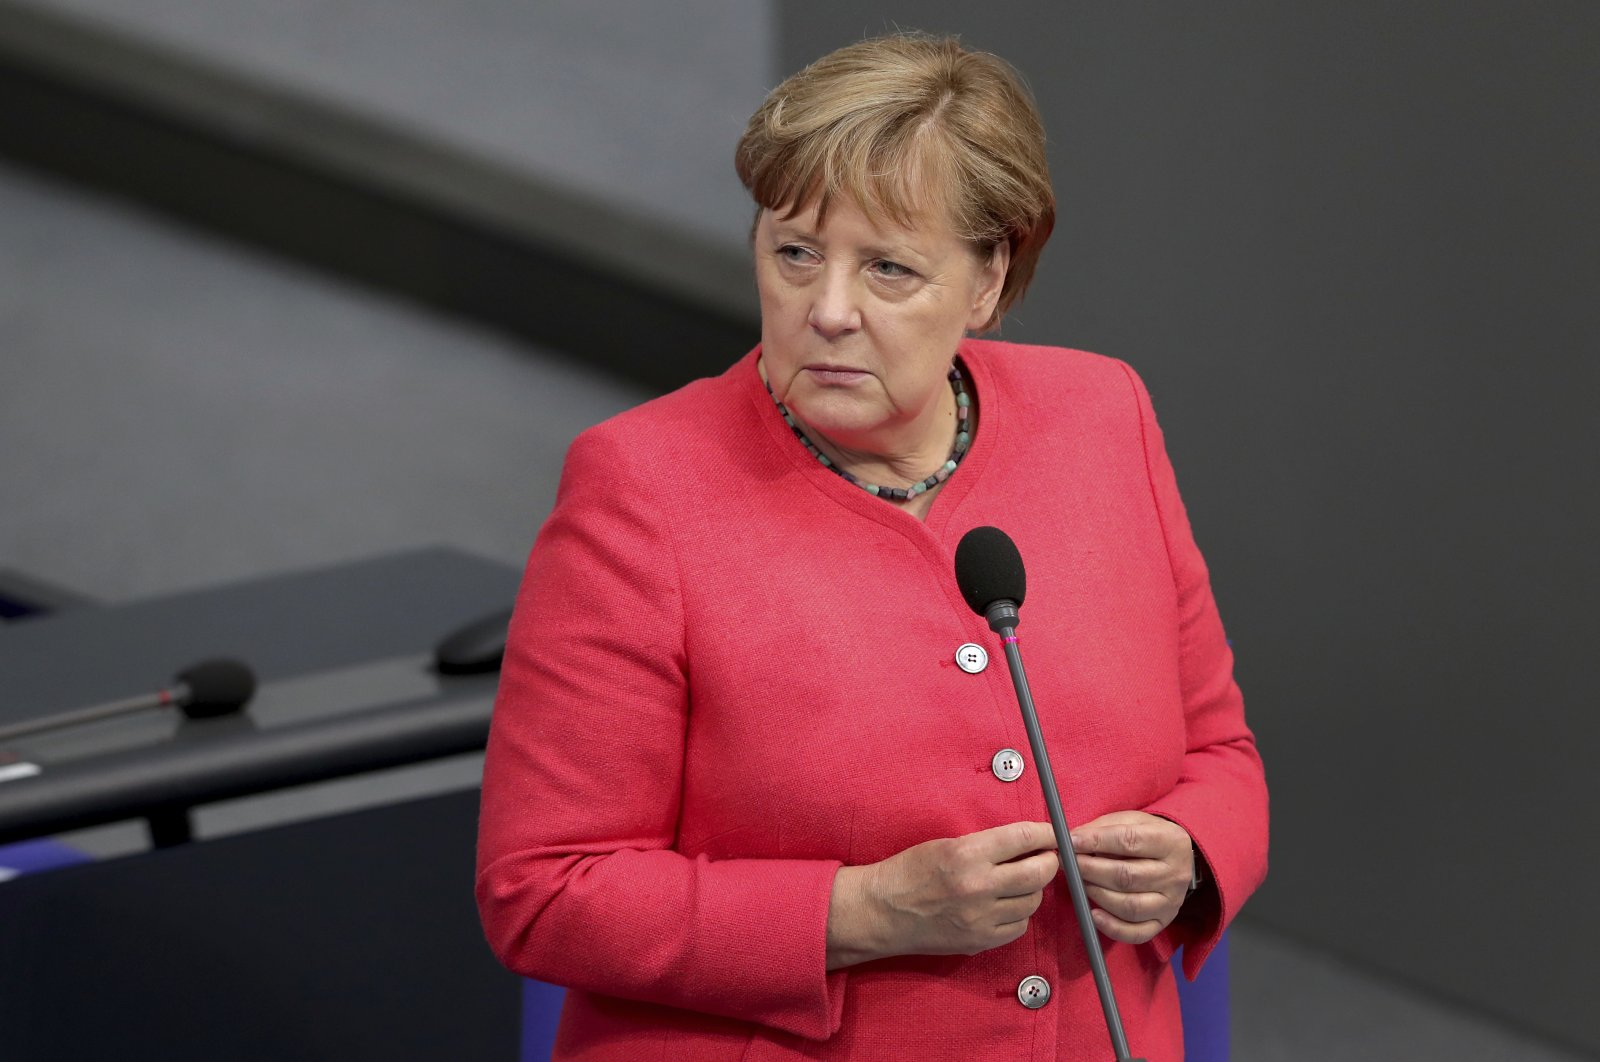 German Chancellor Angela Merkel takes questions from a deputy of the far-right Alternative for Germany party during a meeting of the German federal parliament, the Bundestag, at the Reichstag building, Berlin, Germany, July 1, 2020. (AP Photo)